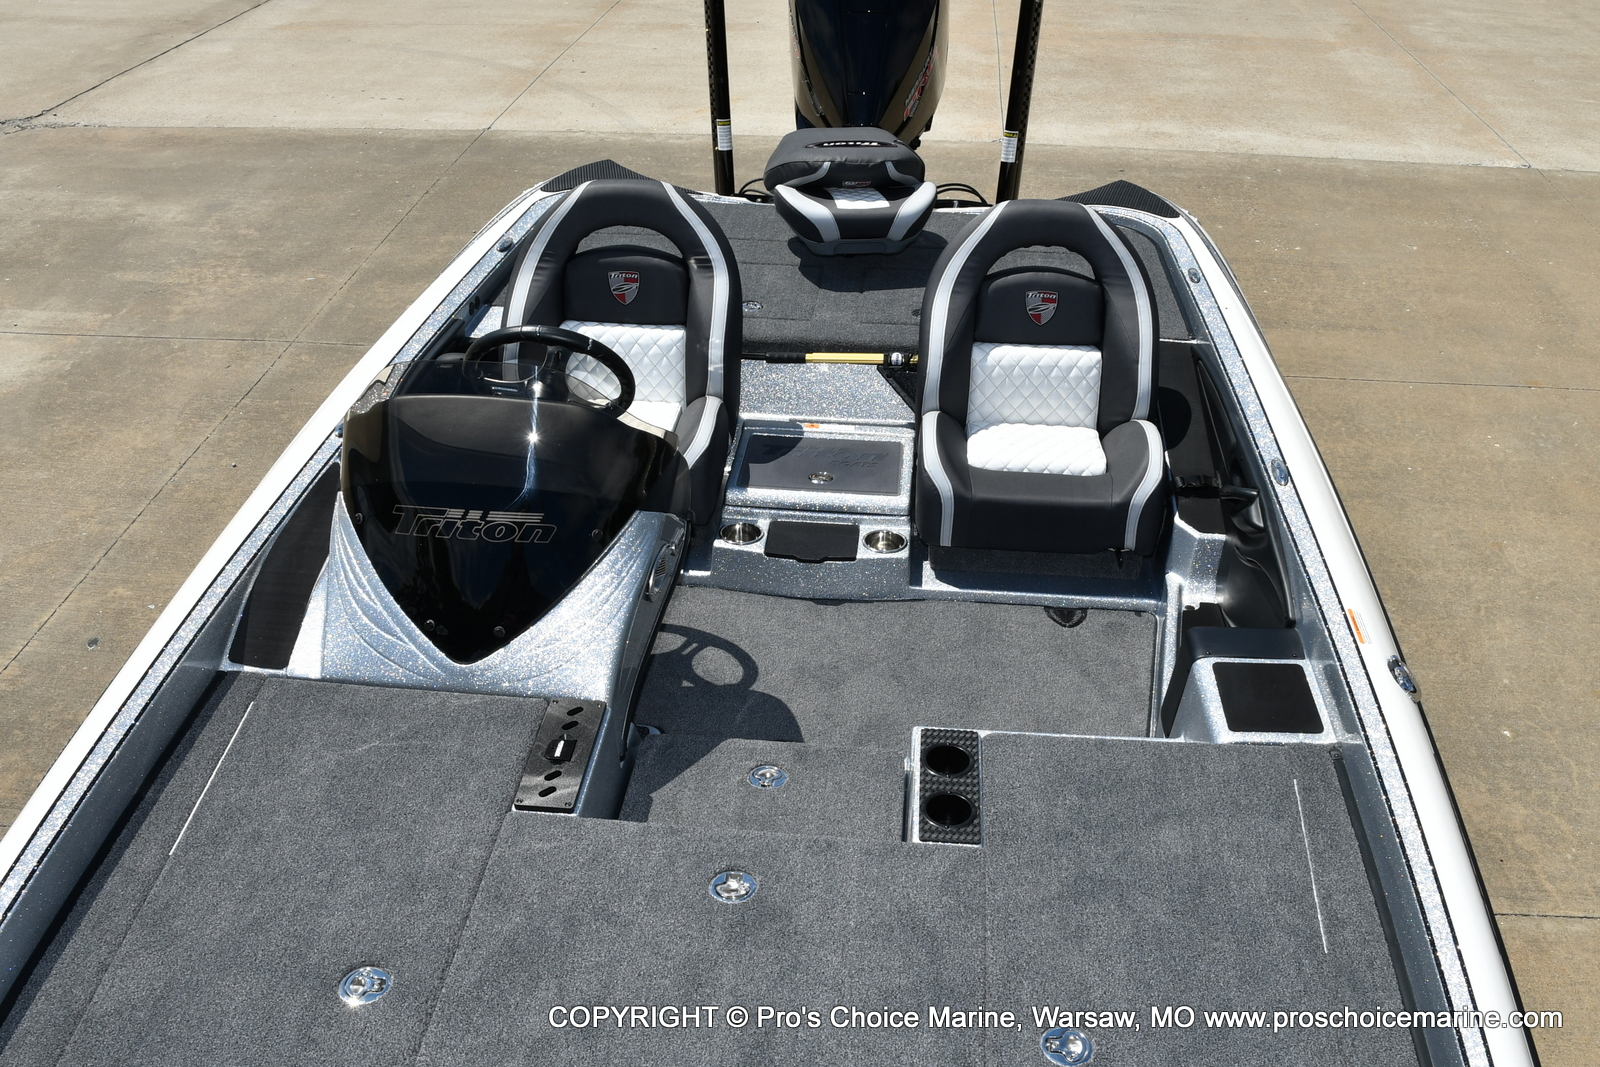 2021 Triton boat for sale, model of the boat is 21 TRX Patriot & Image # 44 of 50